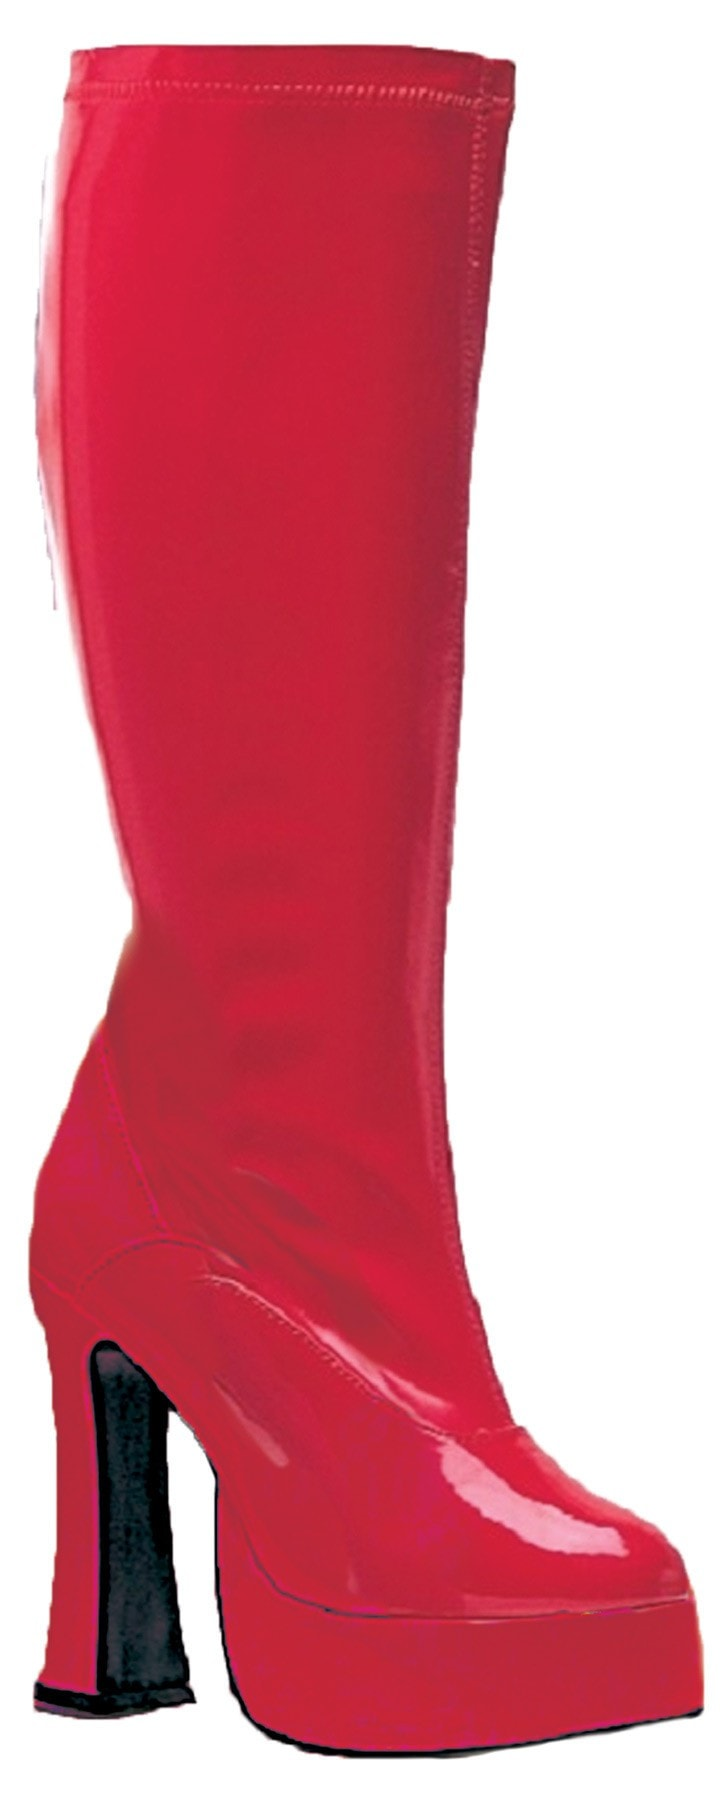 Morris Boot Chacha Red Size 8 - MaxWigs